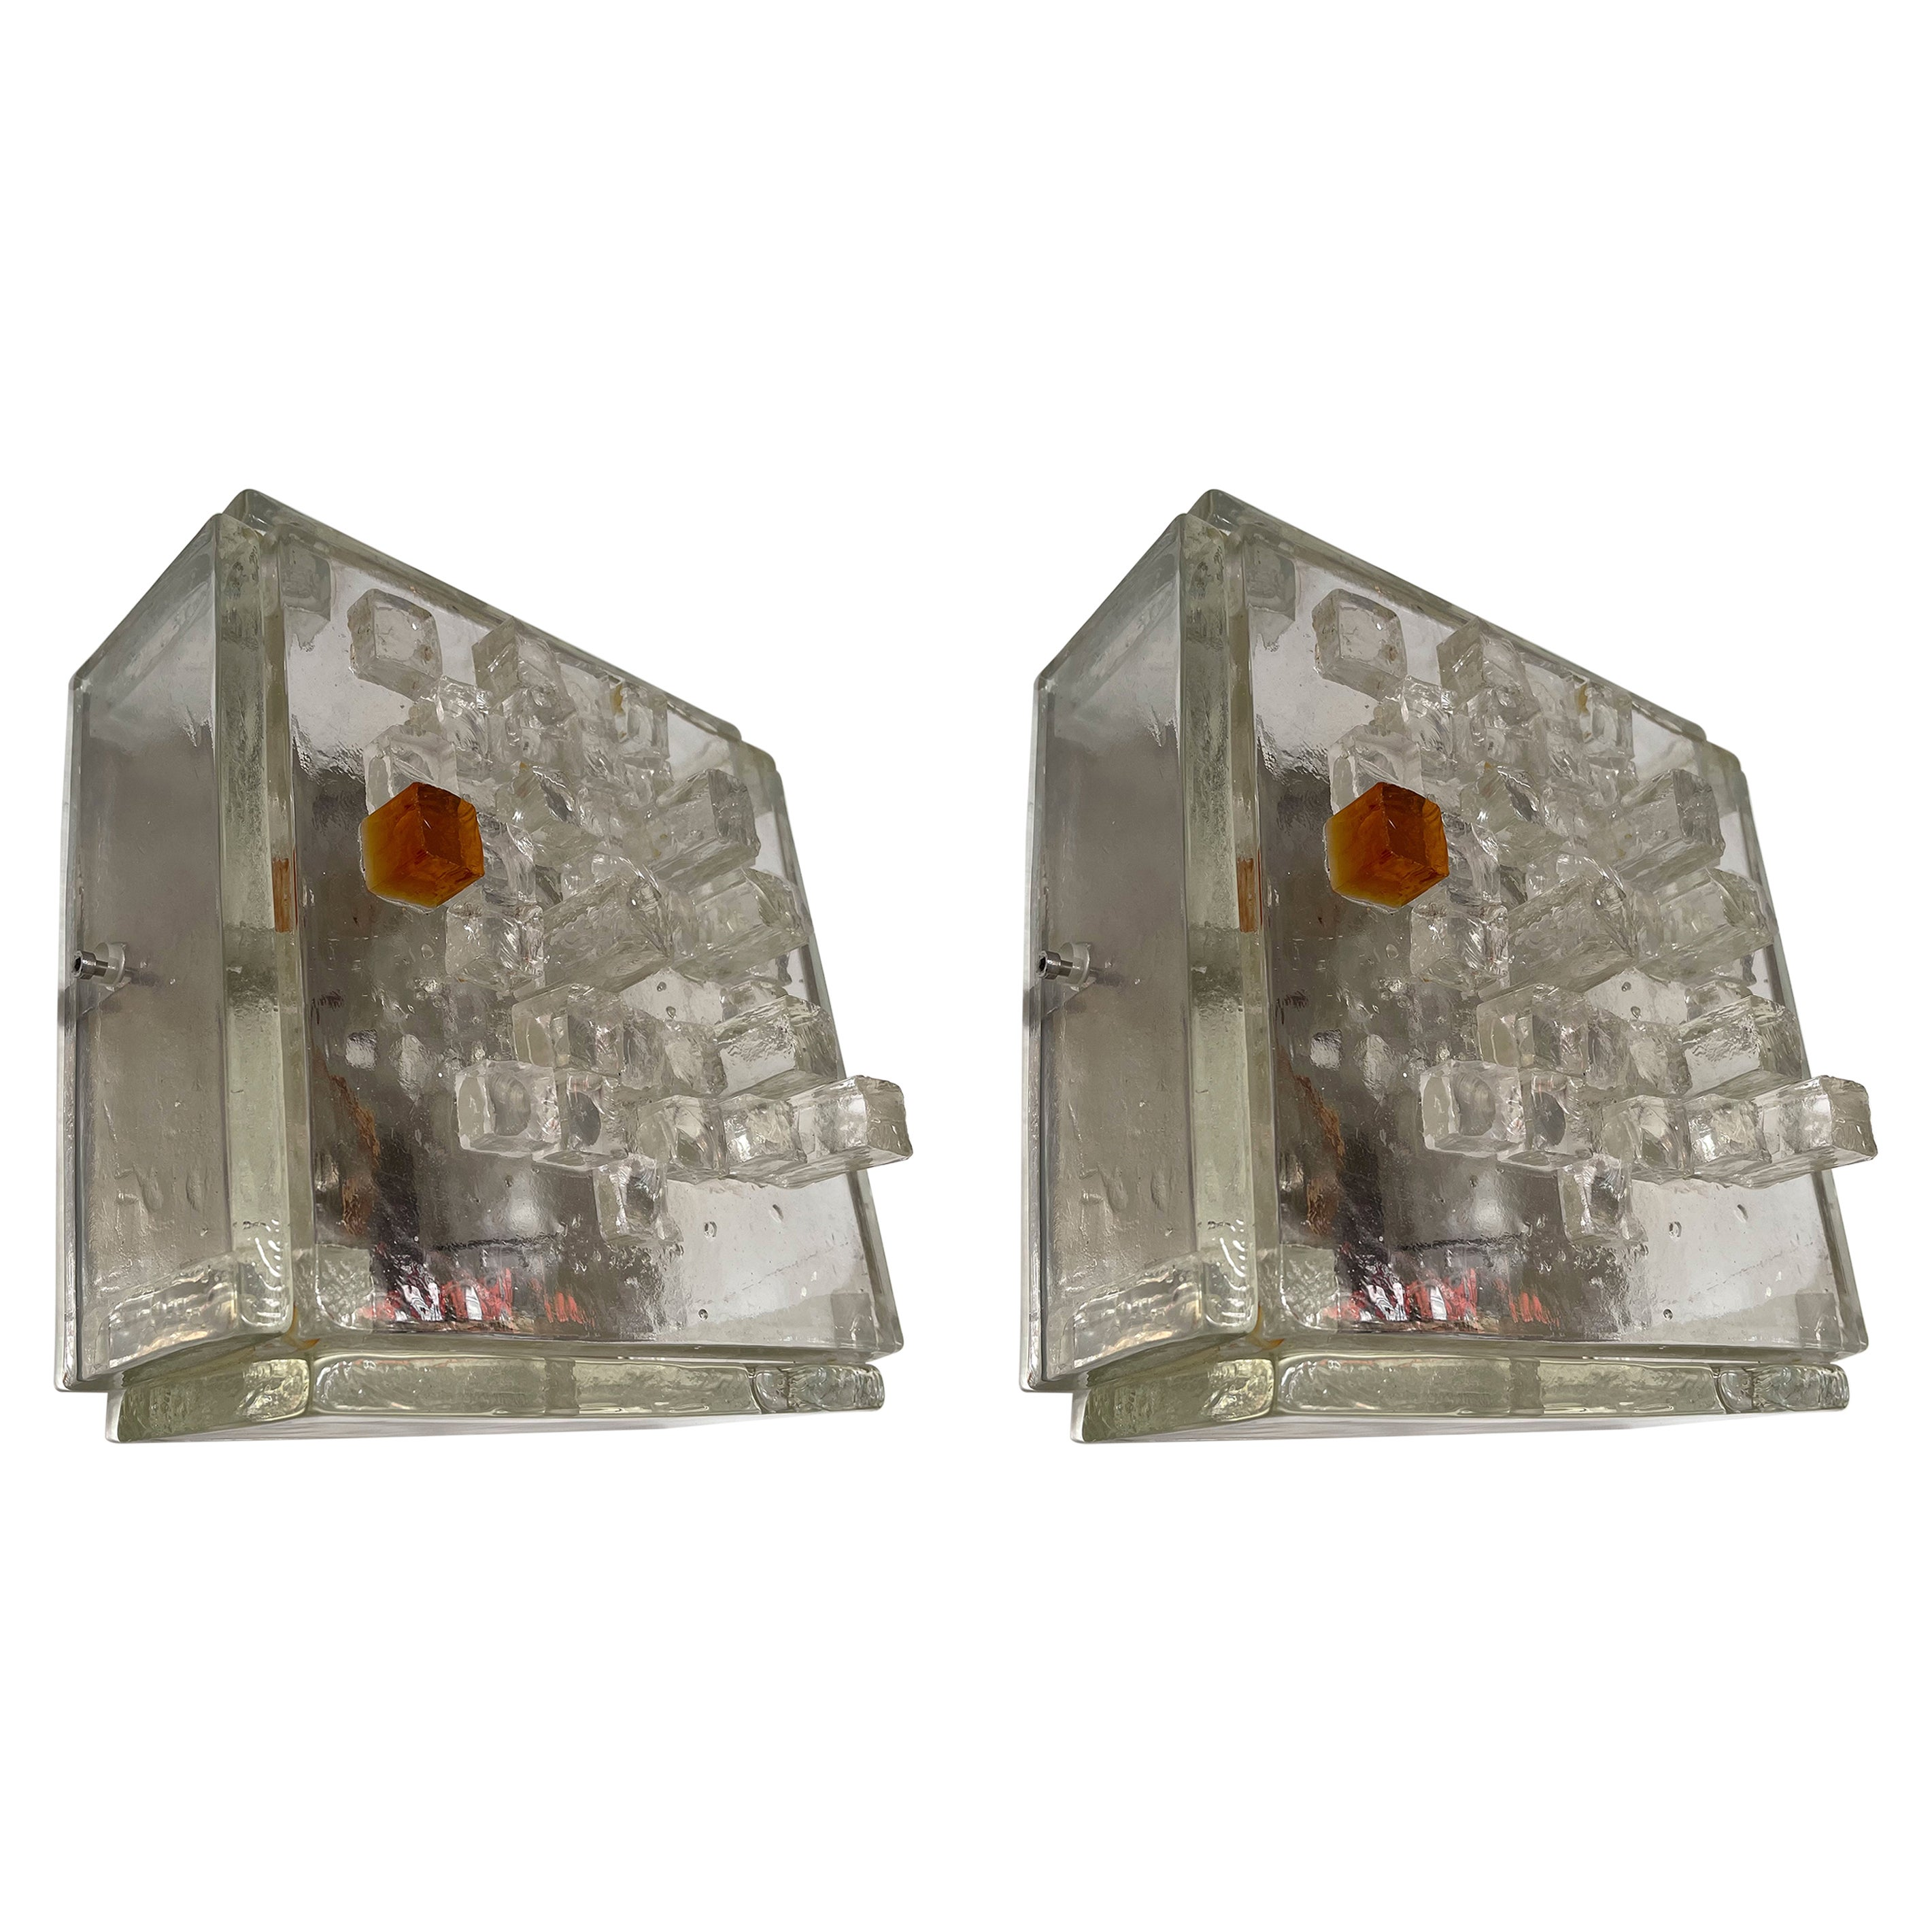 Pair of Apis Glass Cube Sconces by Poliarte, Italy, 1970s